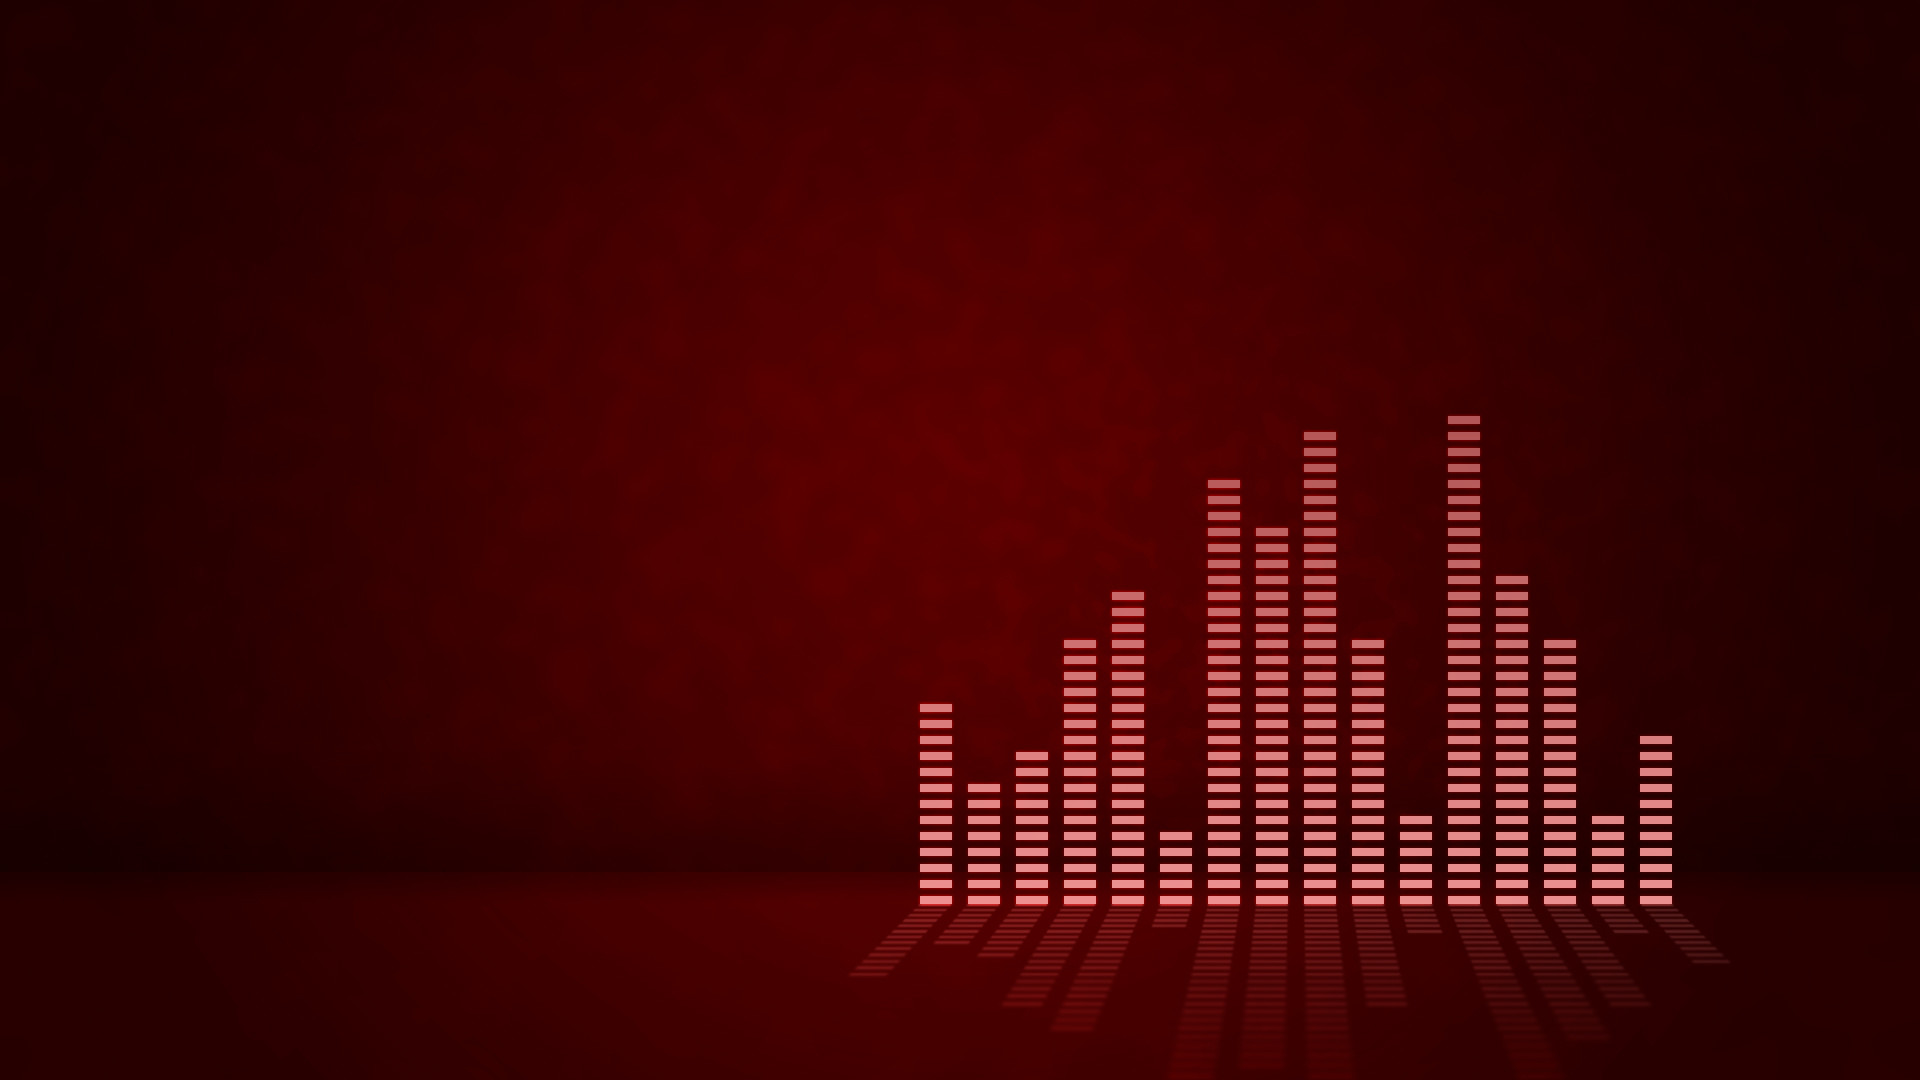 Res: 1920x1080, Equalizer, Dark Red Background wallpaper thumb